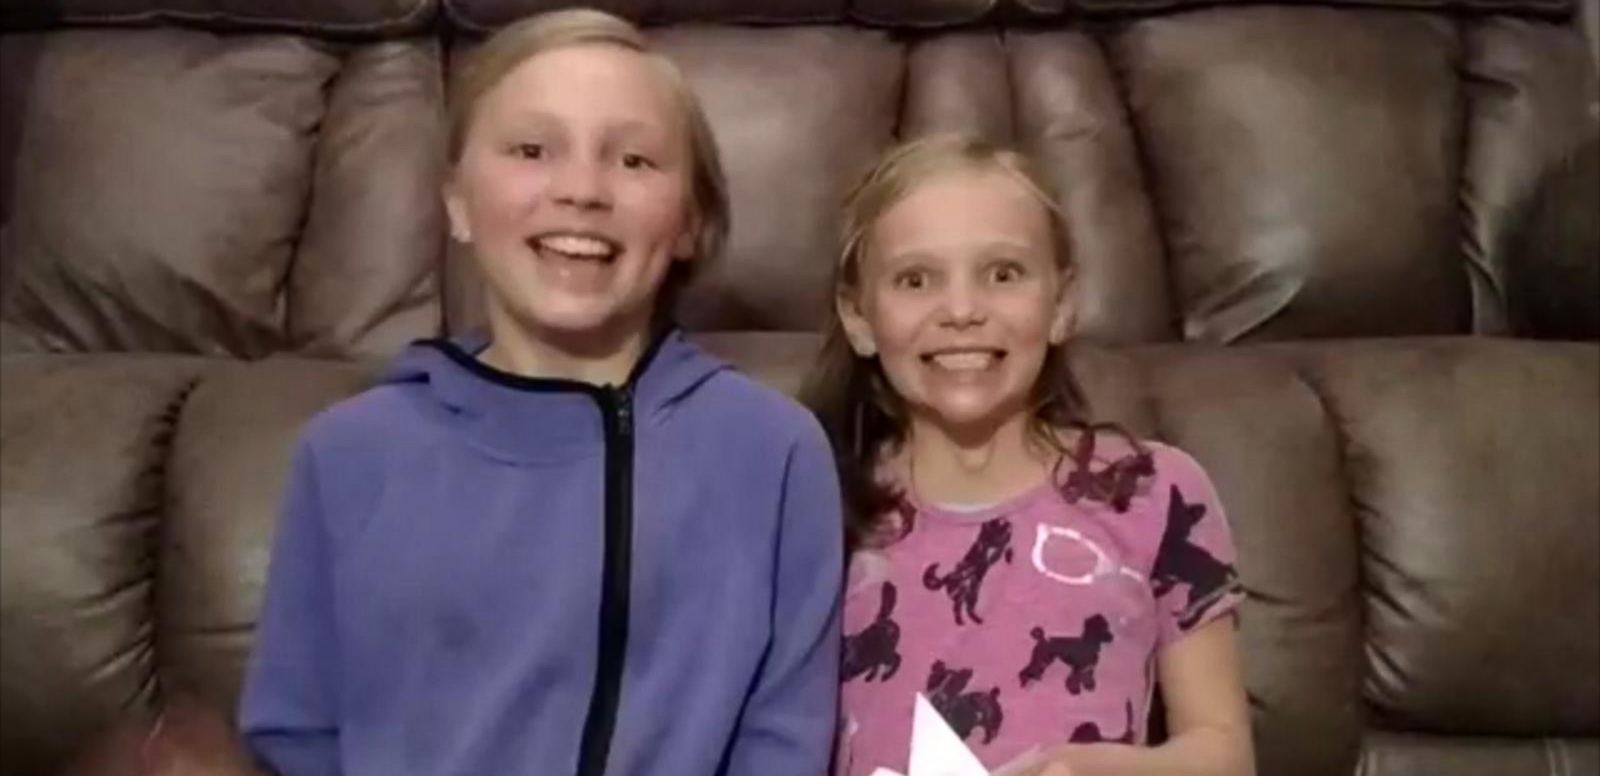 VIDEO: Girls Fold 1,989 Paper Cranes for Taylor Swift's Mom